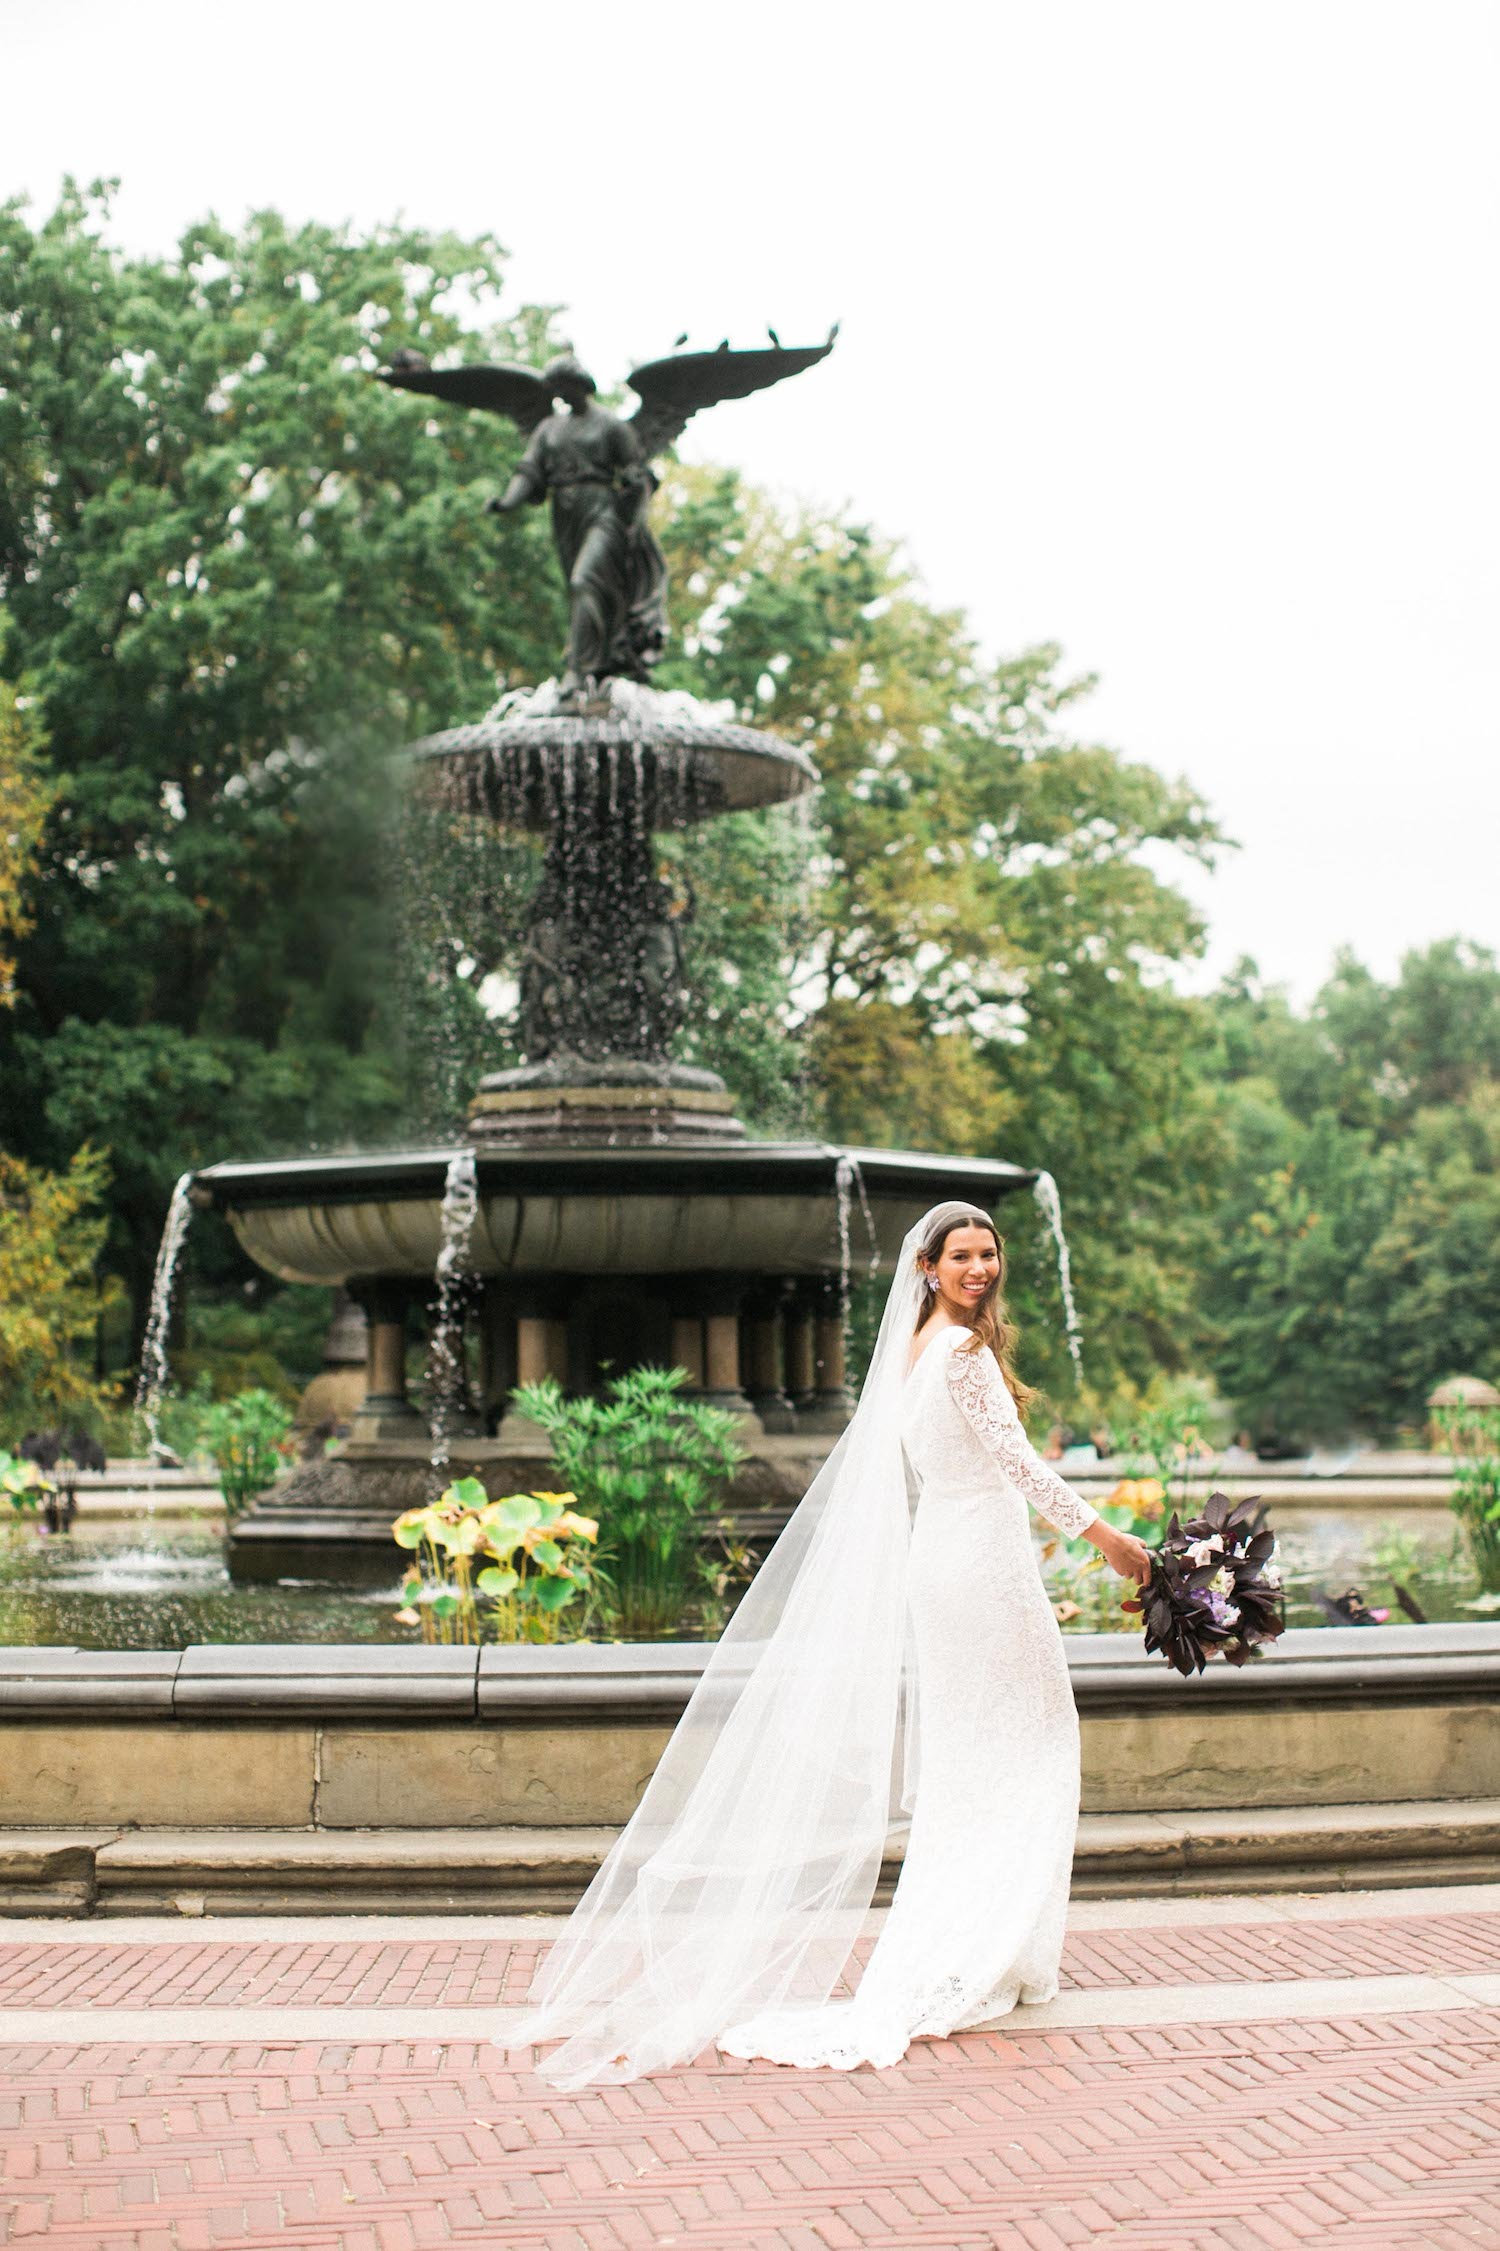 The Flower Bride- NYC Shoot- Lindsay Madden Photography-42 Full Aperture Floral copy.jpeg